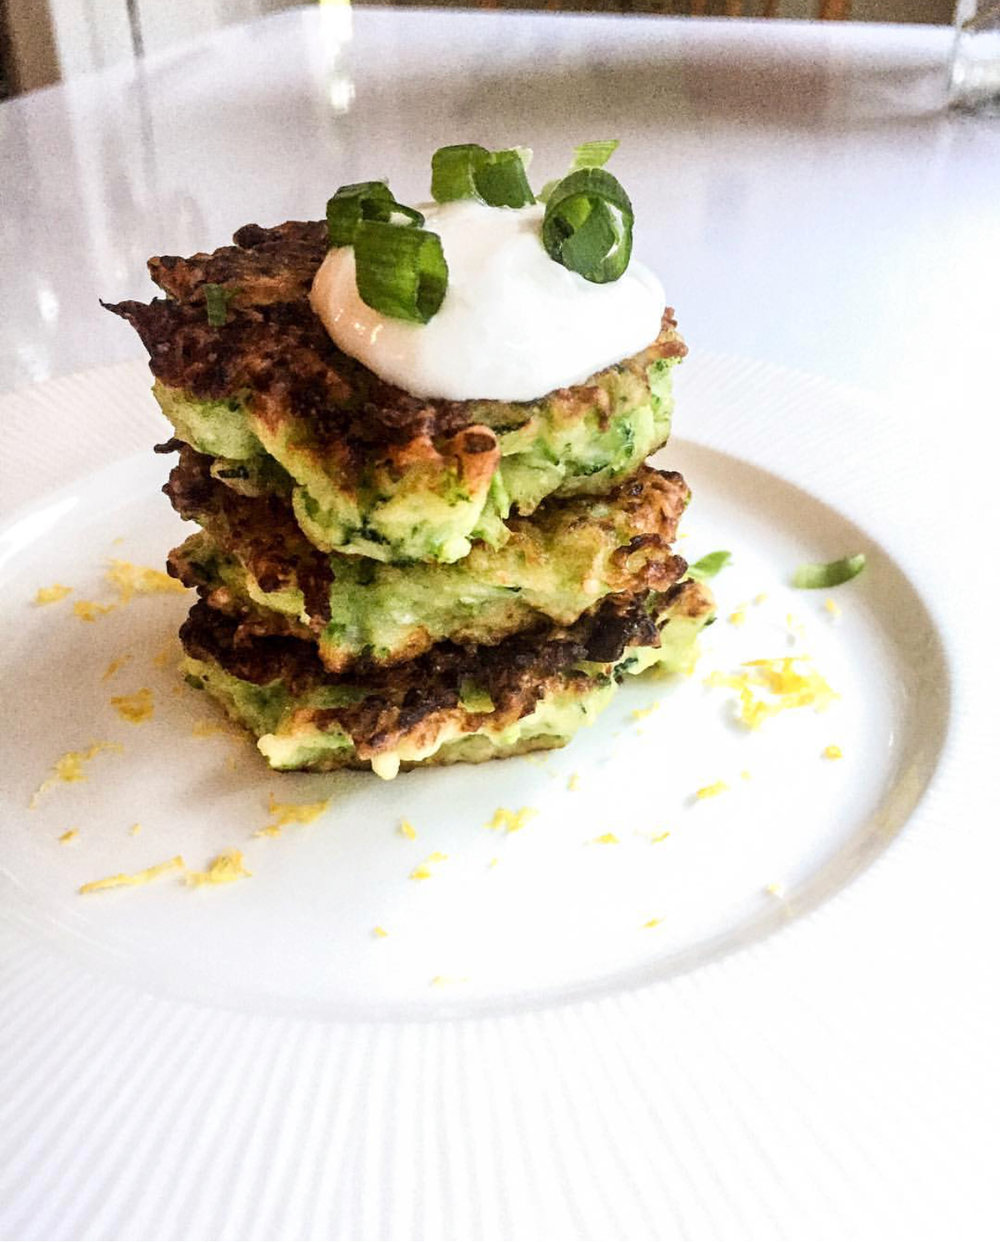 Delicious Zucchini fritters from Hanging Out In the Kitchen.